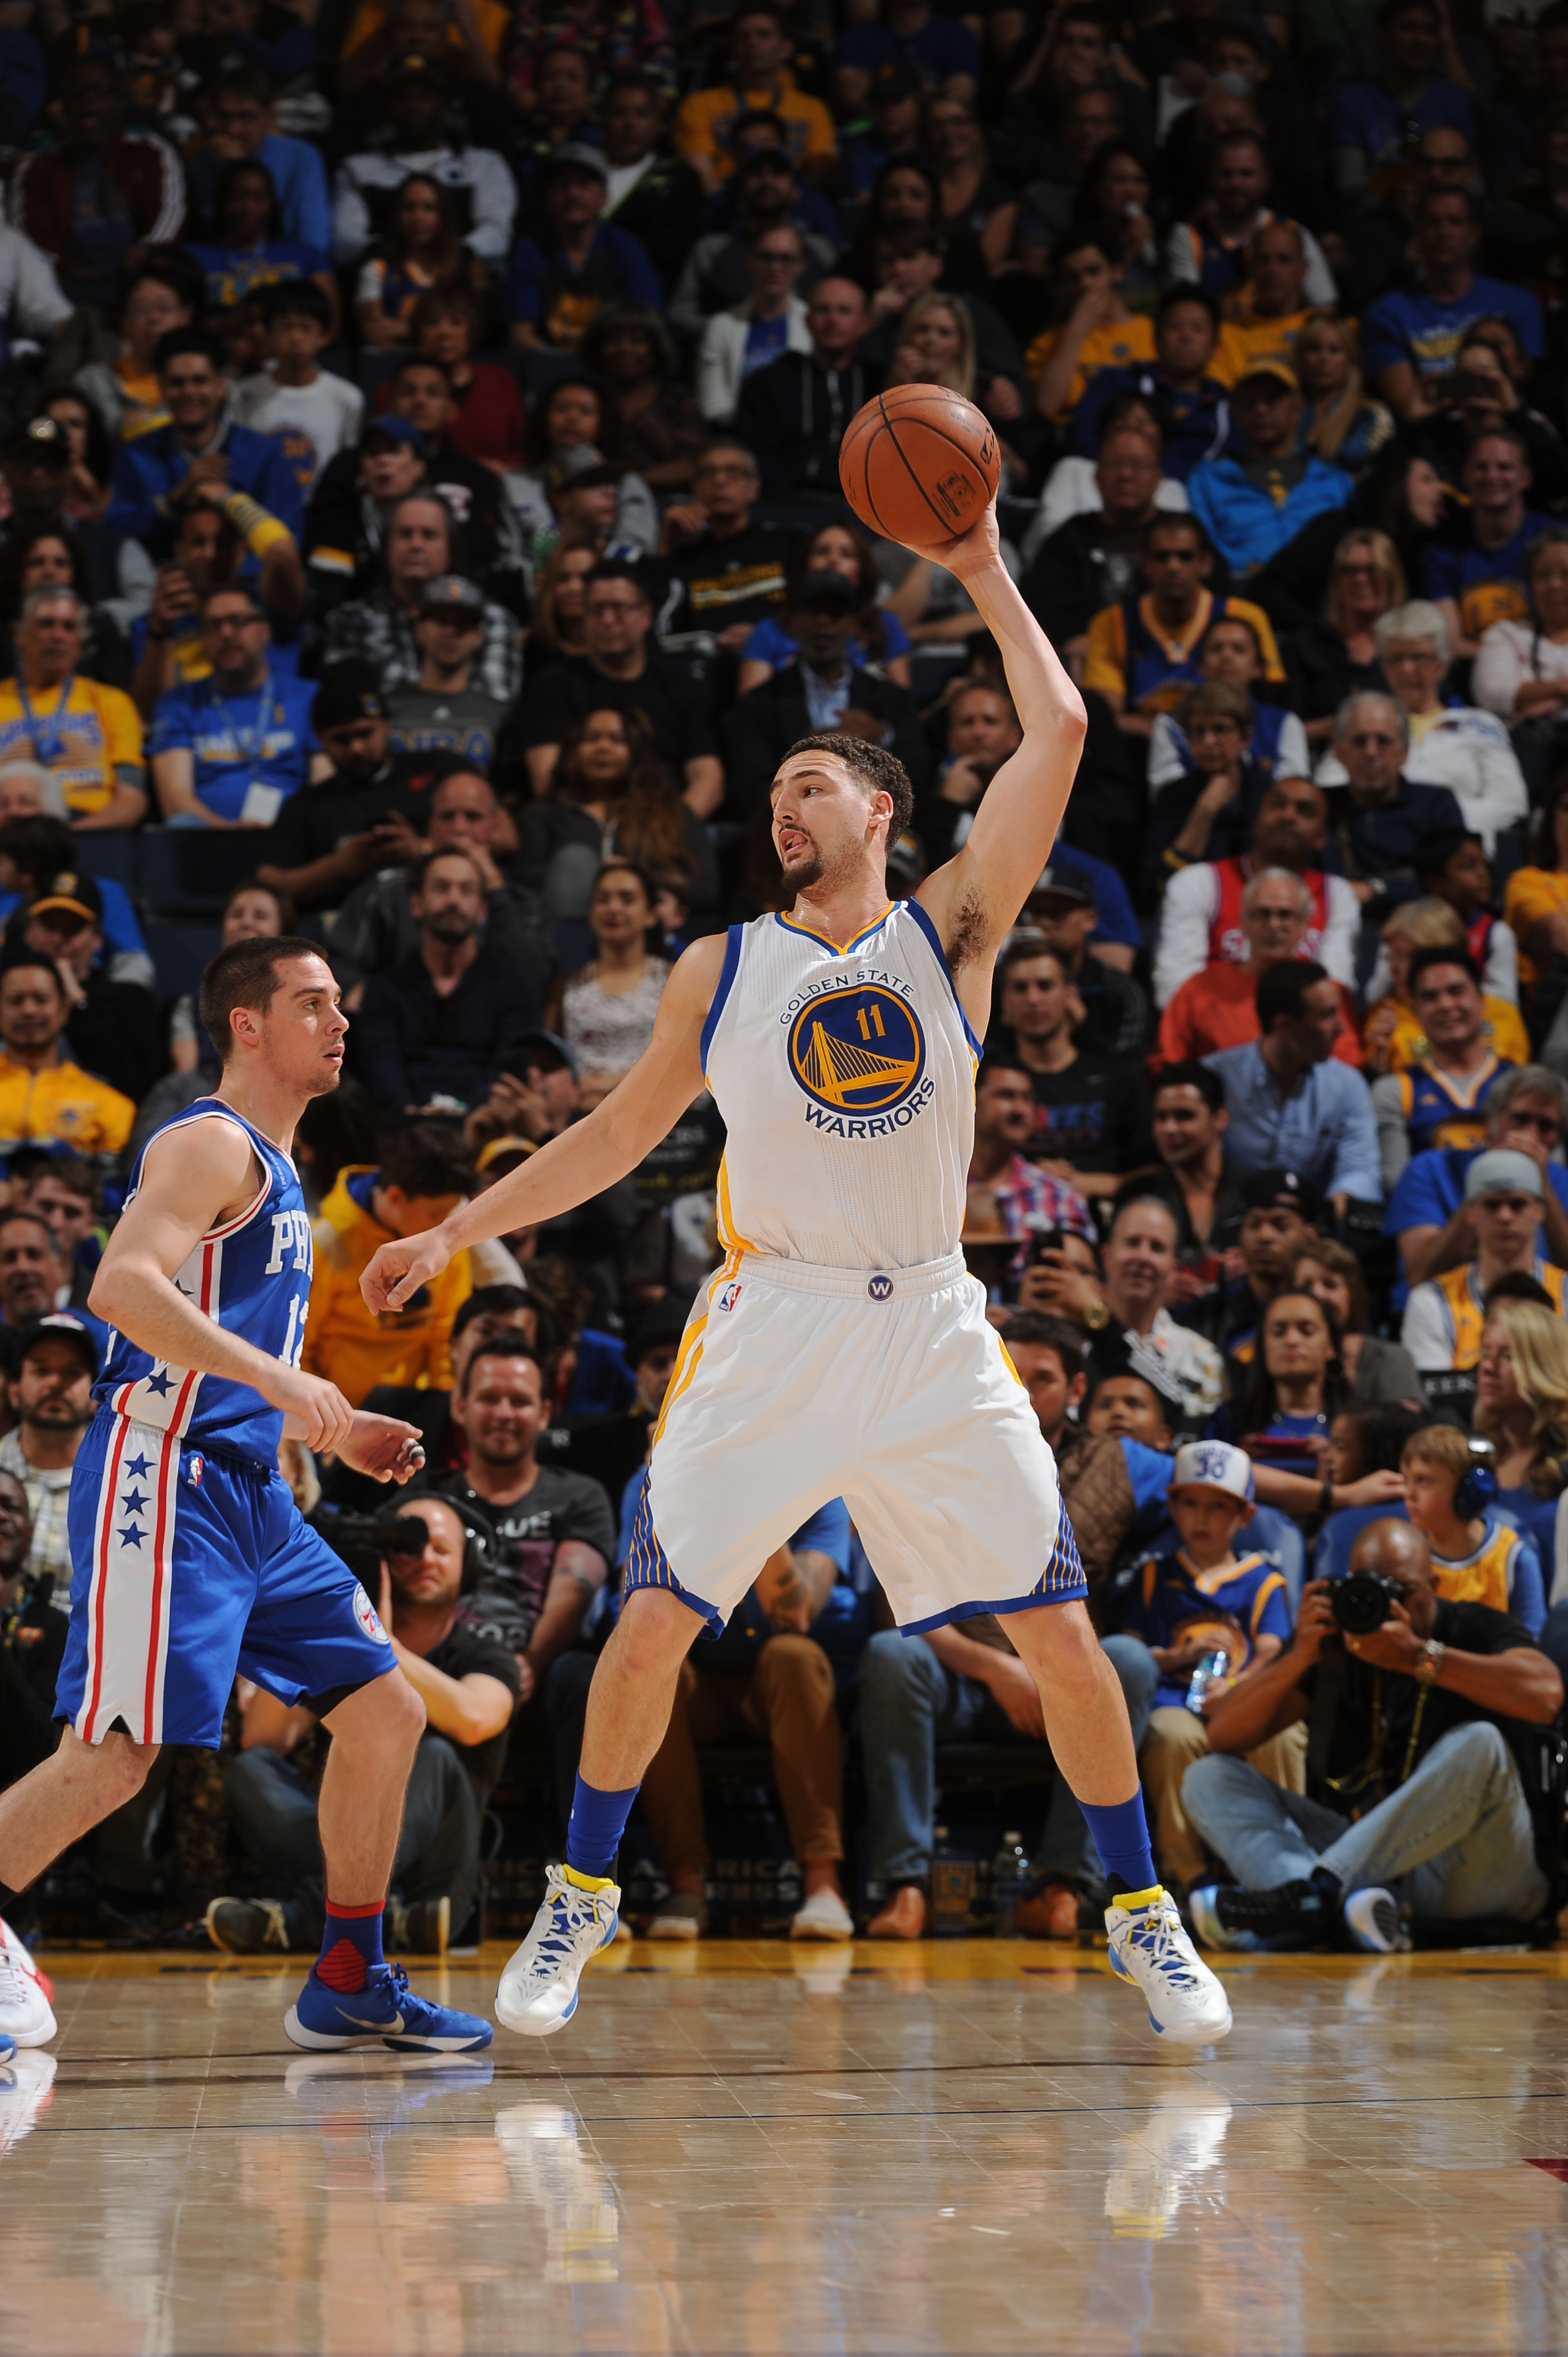 OAKLAND, CA - MARCH 27:  Klay Thompson #11 of the Golden State Warriors handles the ball against the Philadelphia 76ers on March 27, 2016 at Oracle Arena in Oakland, California. (Photo by Noah Graham/NBAE via Getty Images)